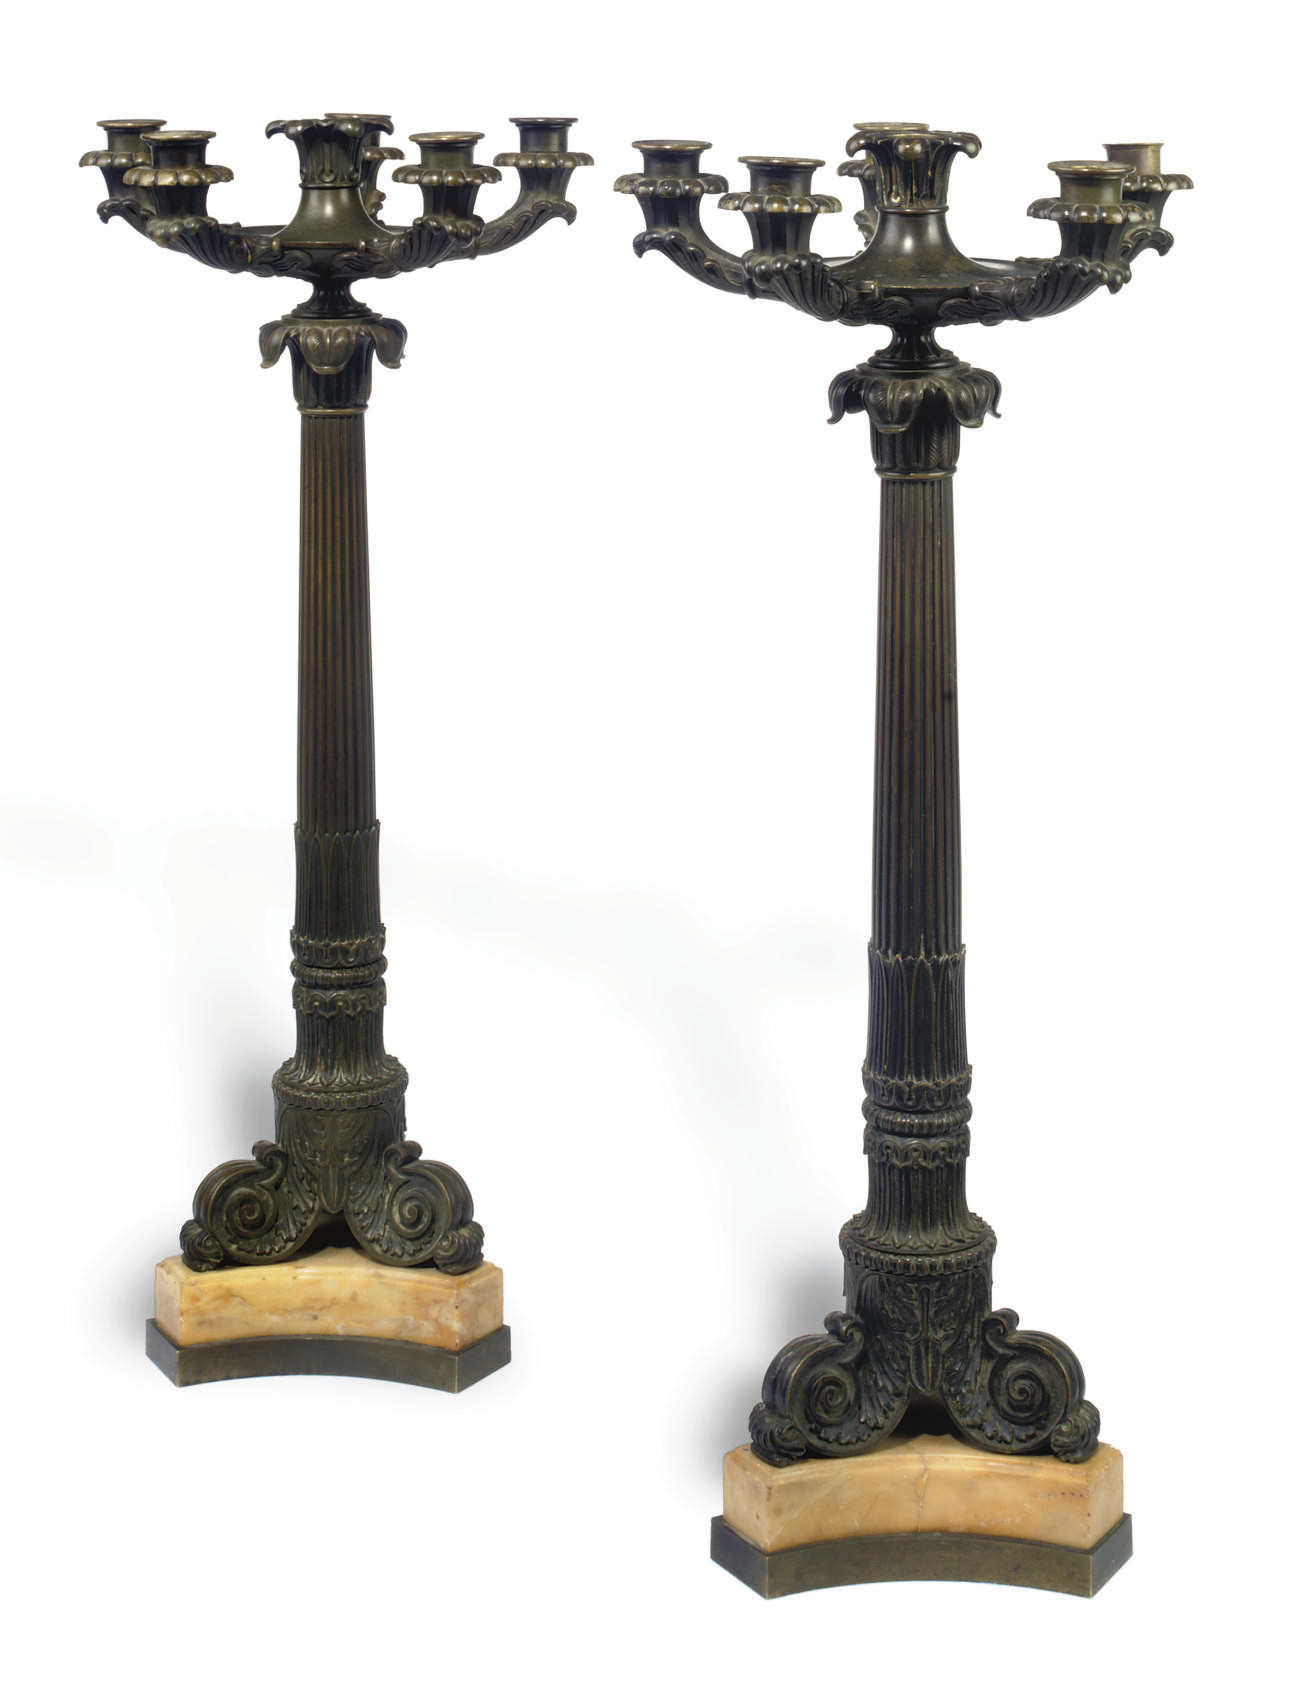 A PAIR OF CHARLES X BRONZE SIX-LIGHT CANDELABRA